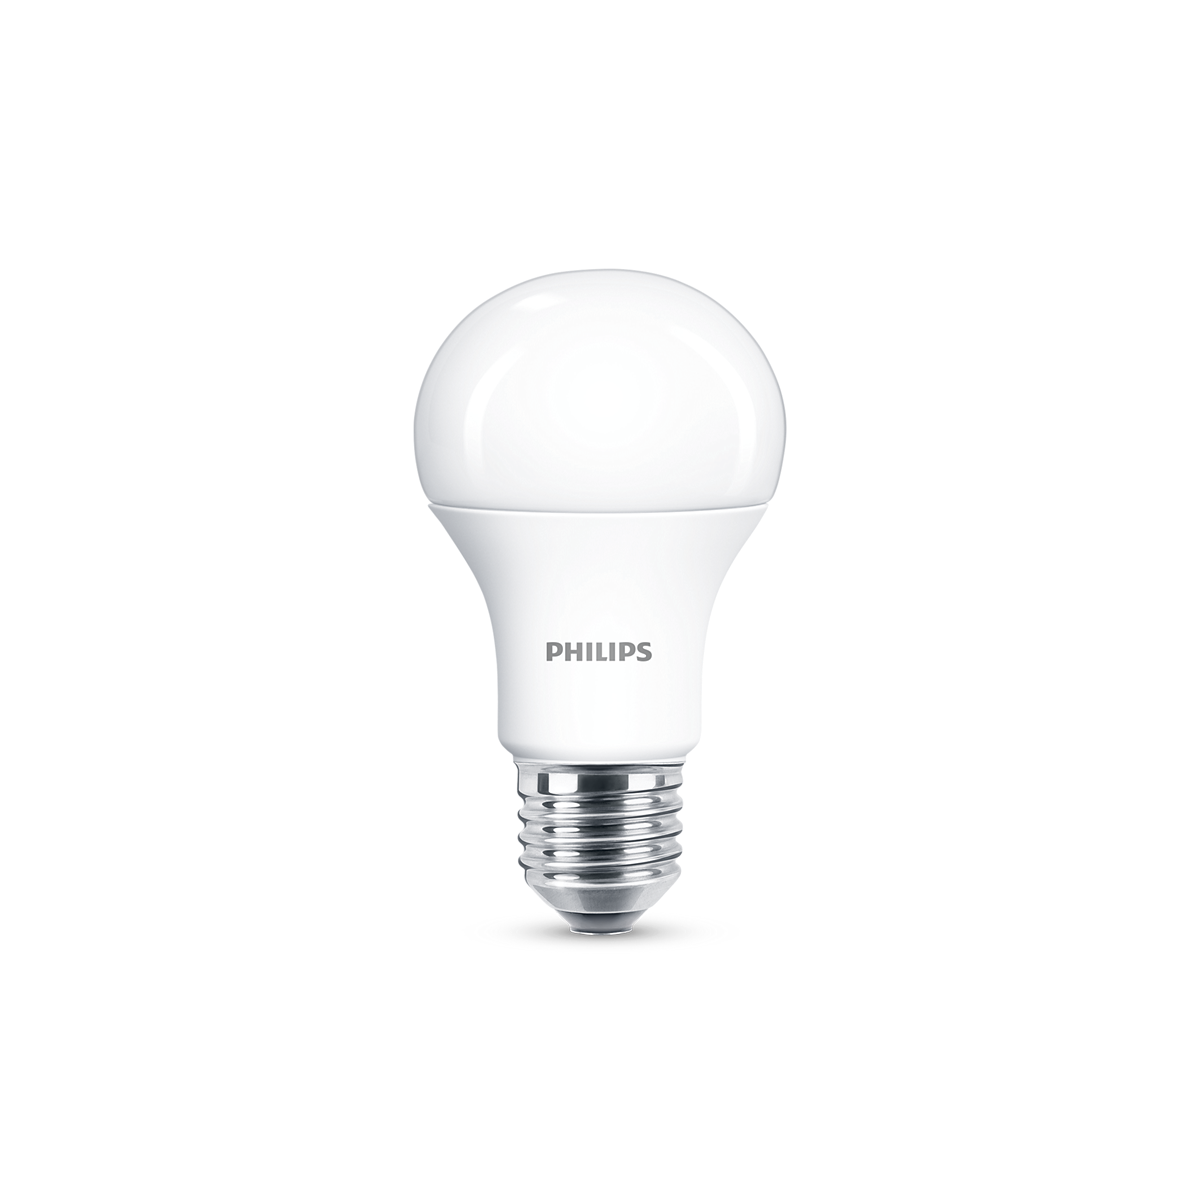 Standard LED LED Philips Lâmpadas bulbs qzMGLUVpS